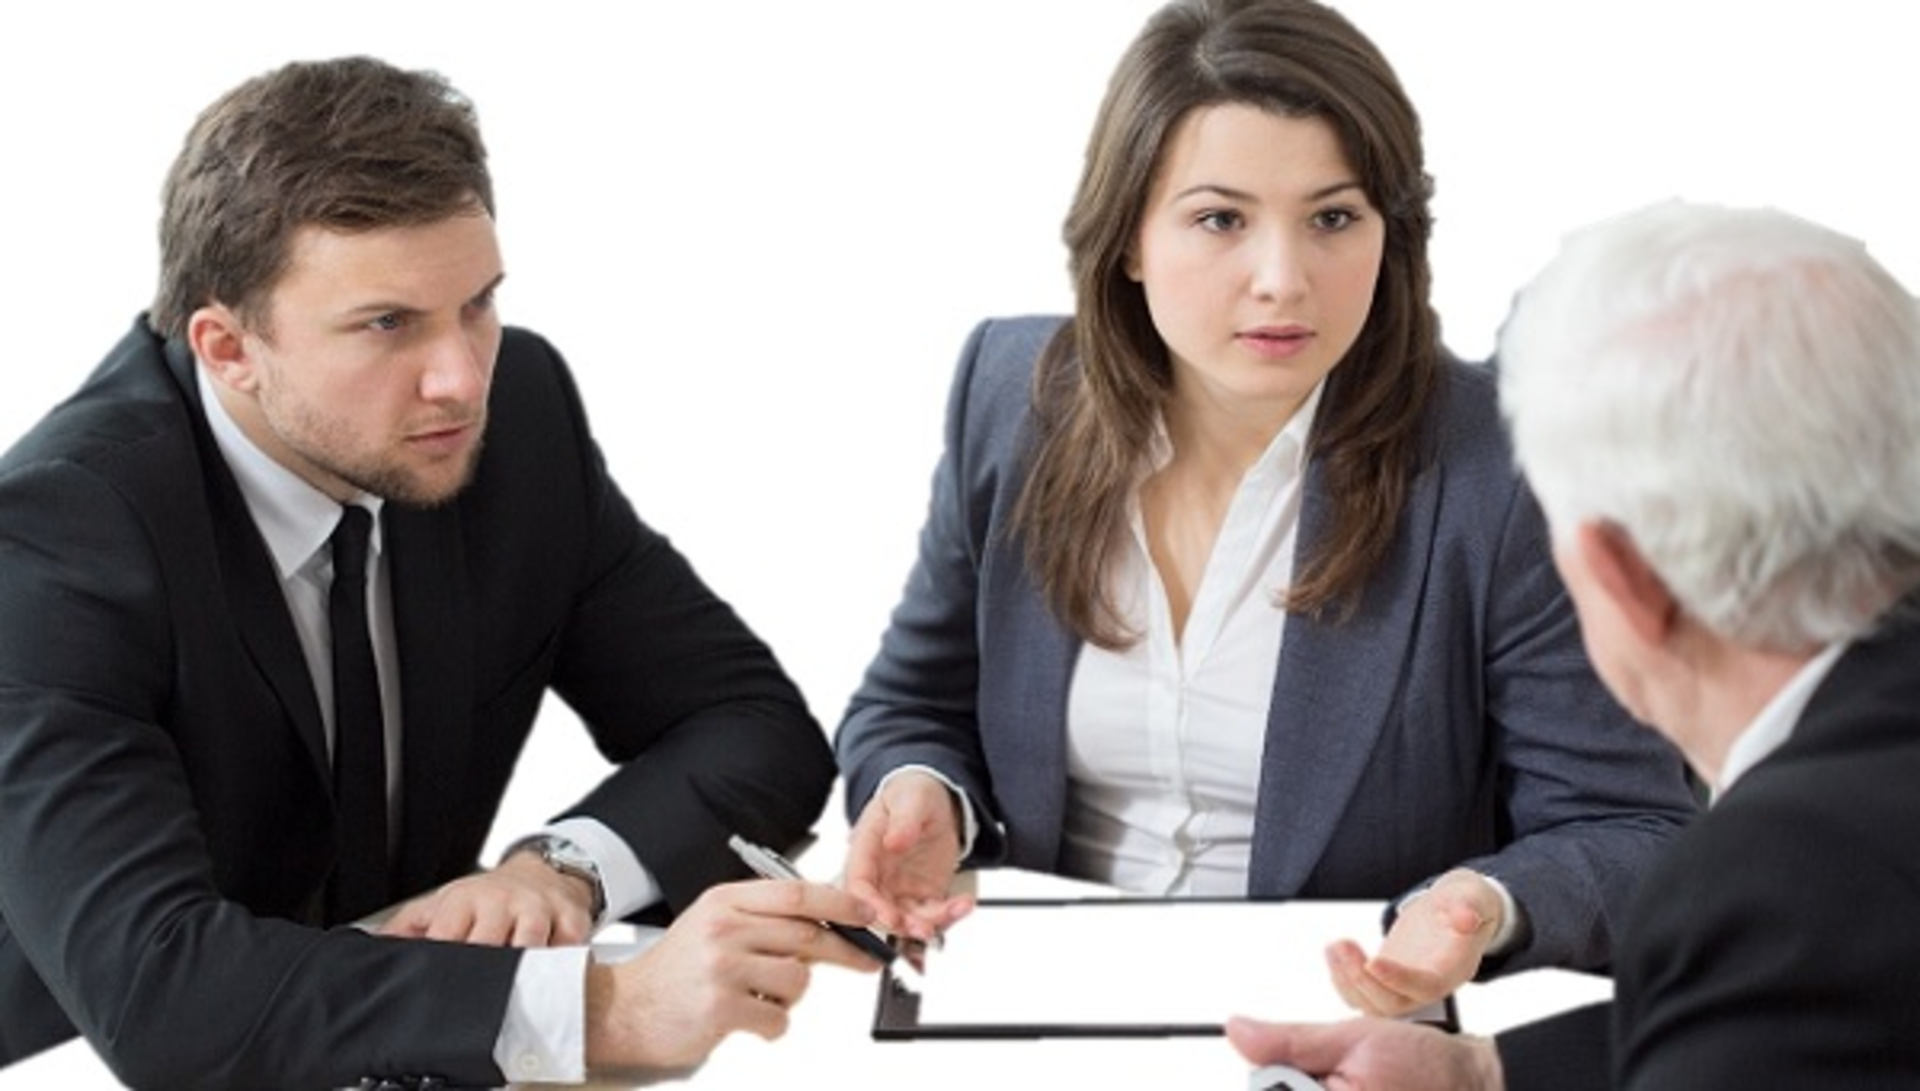 5 tips for business negotiation image